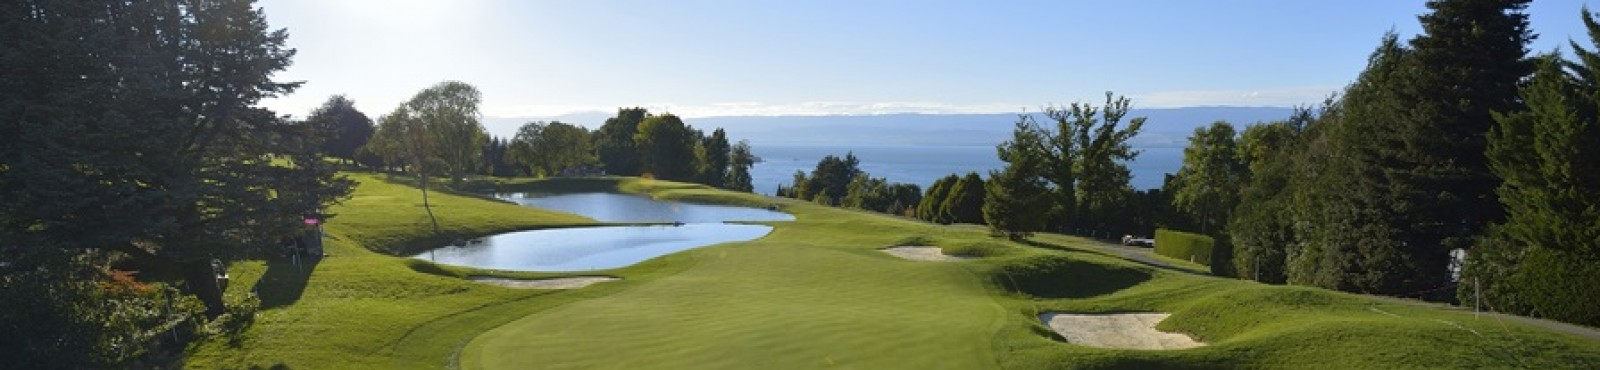 Evian Golf Resort B